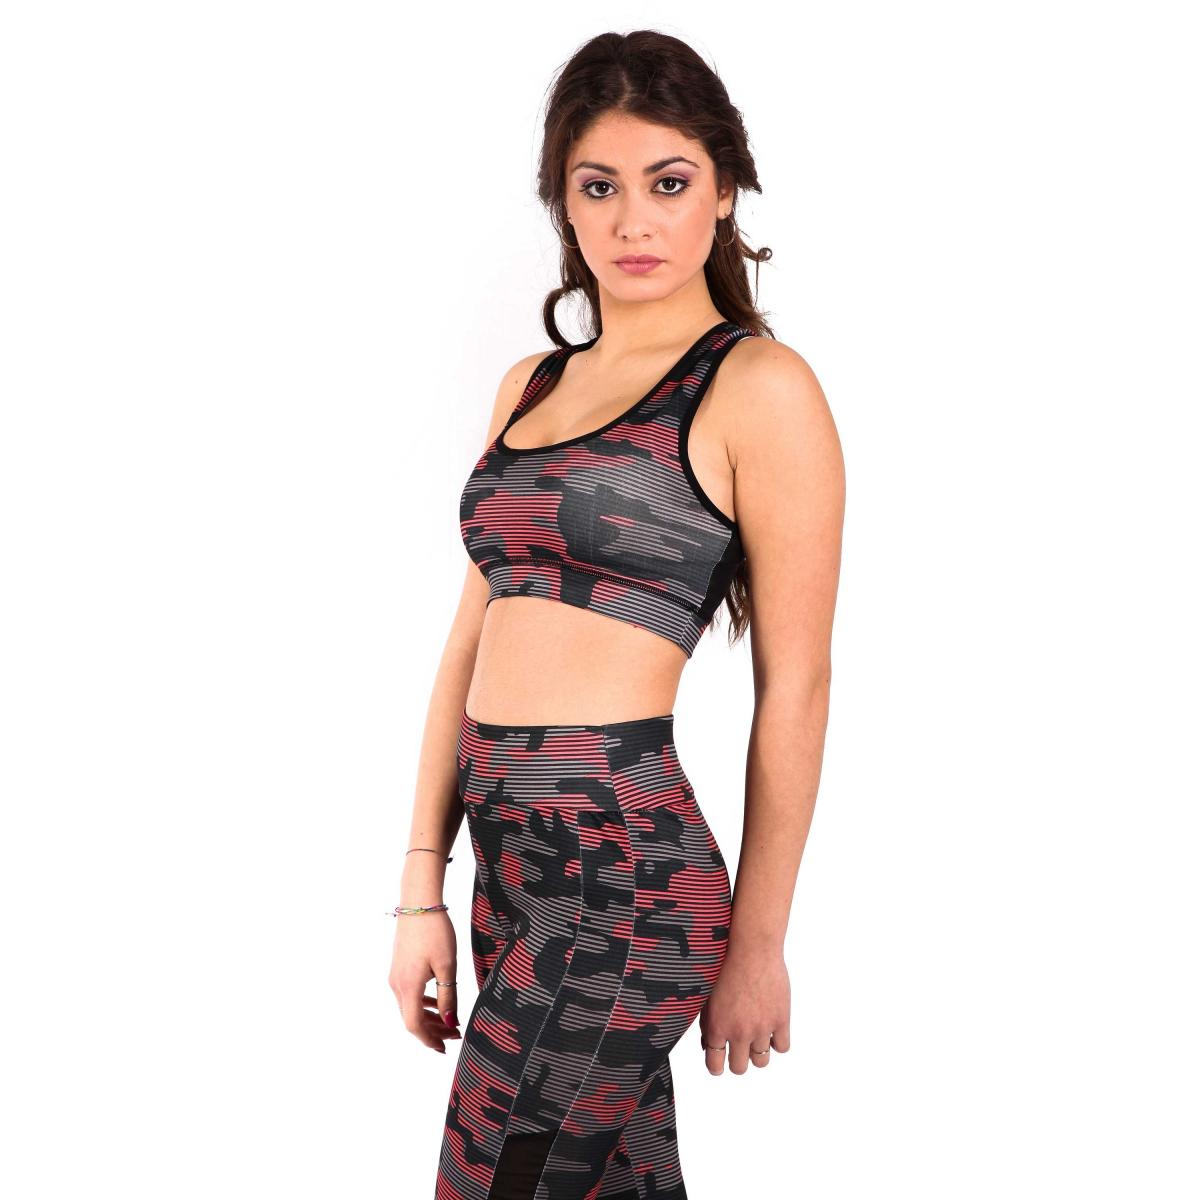 Completo fitness camouflage - donna